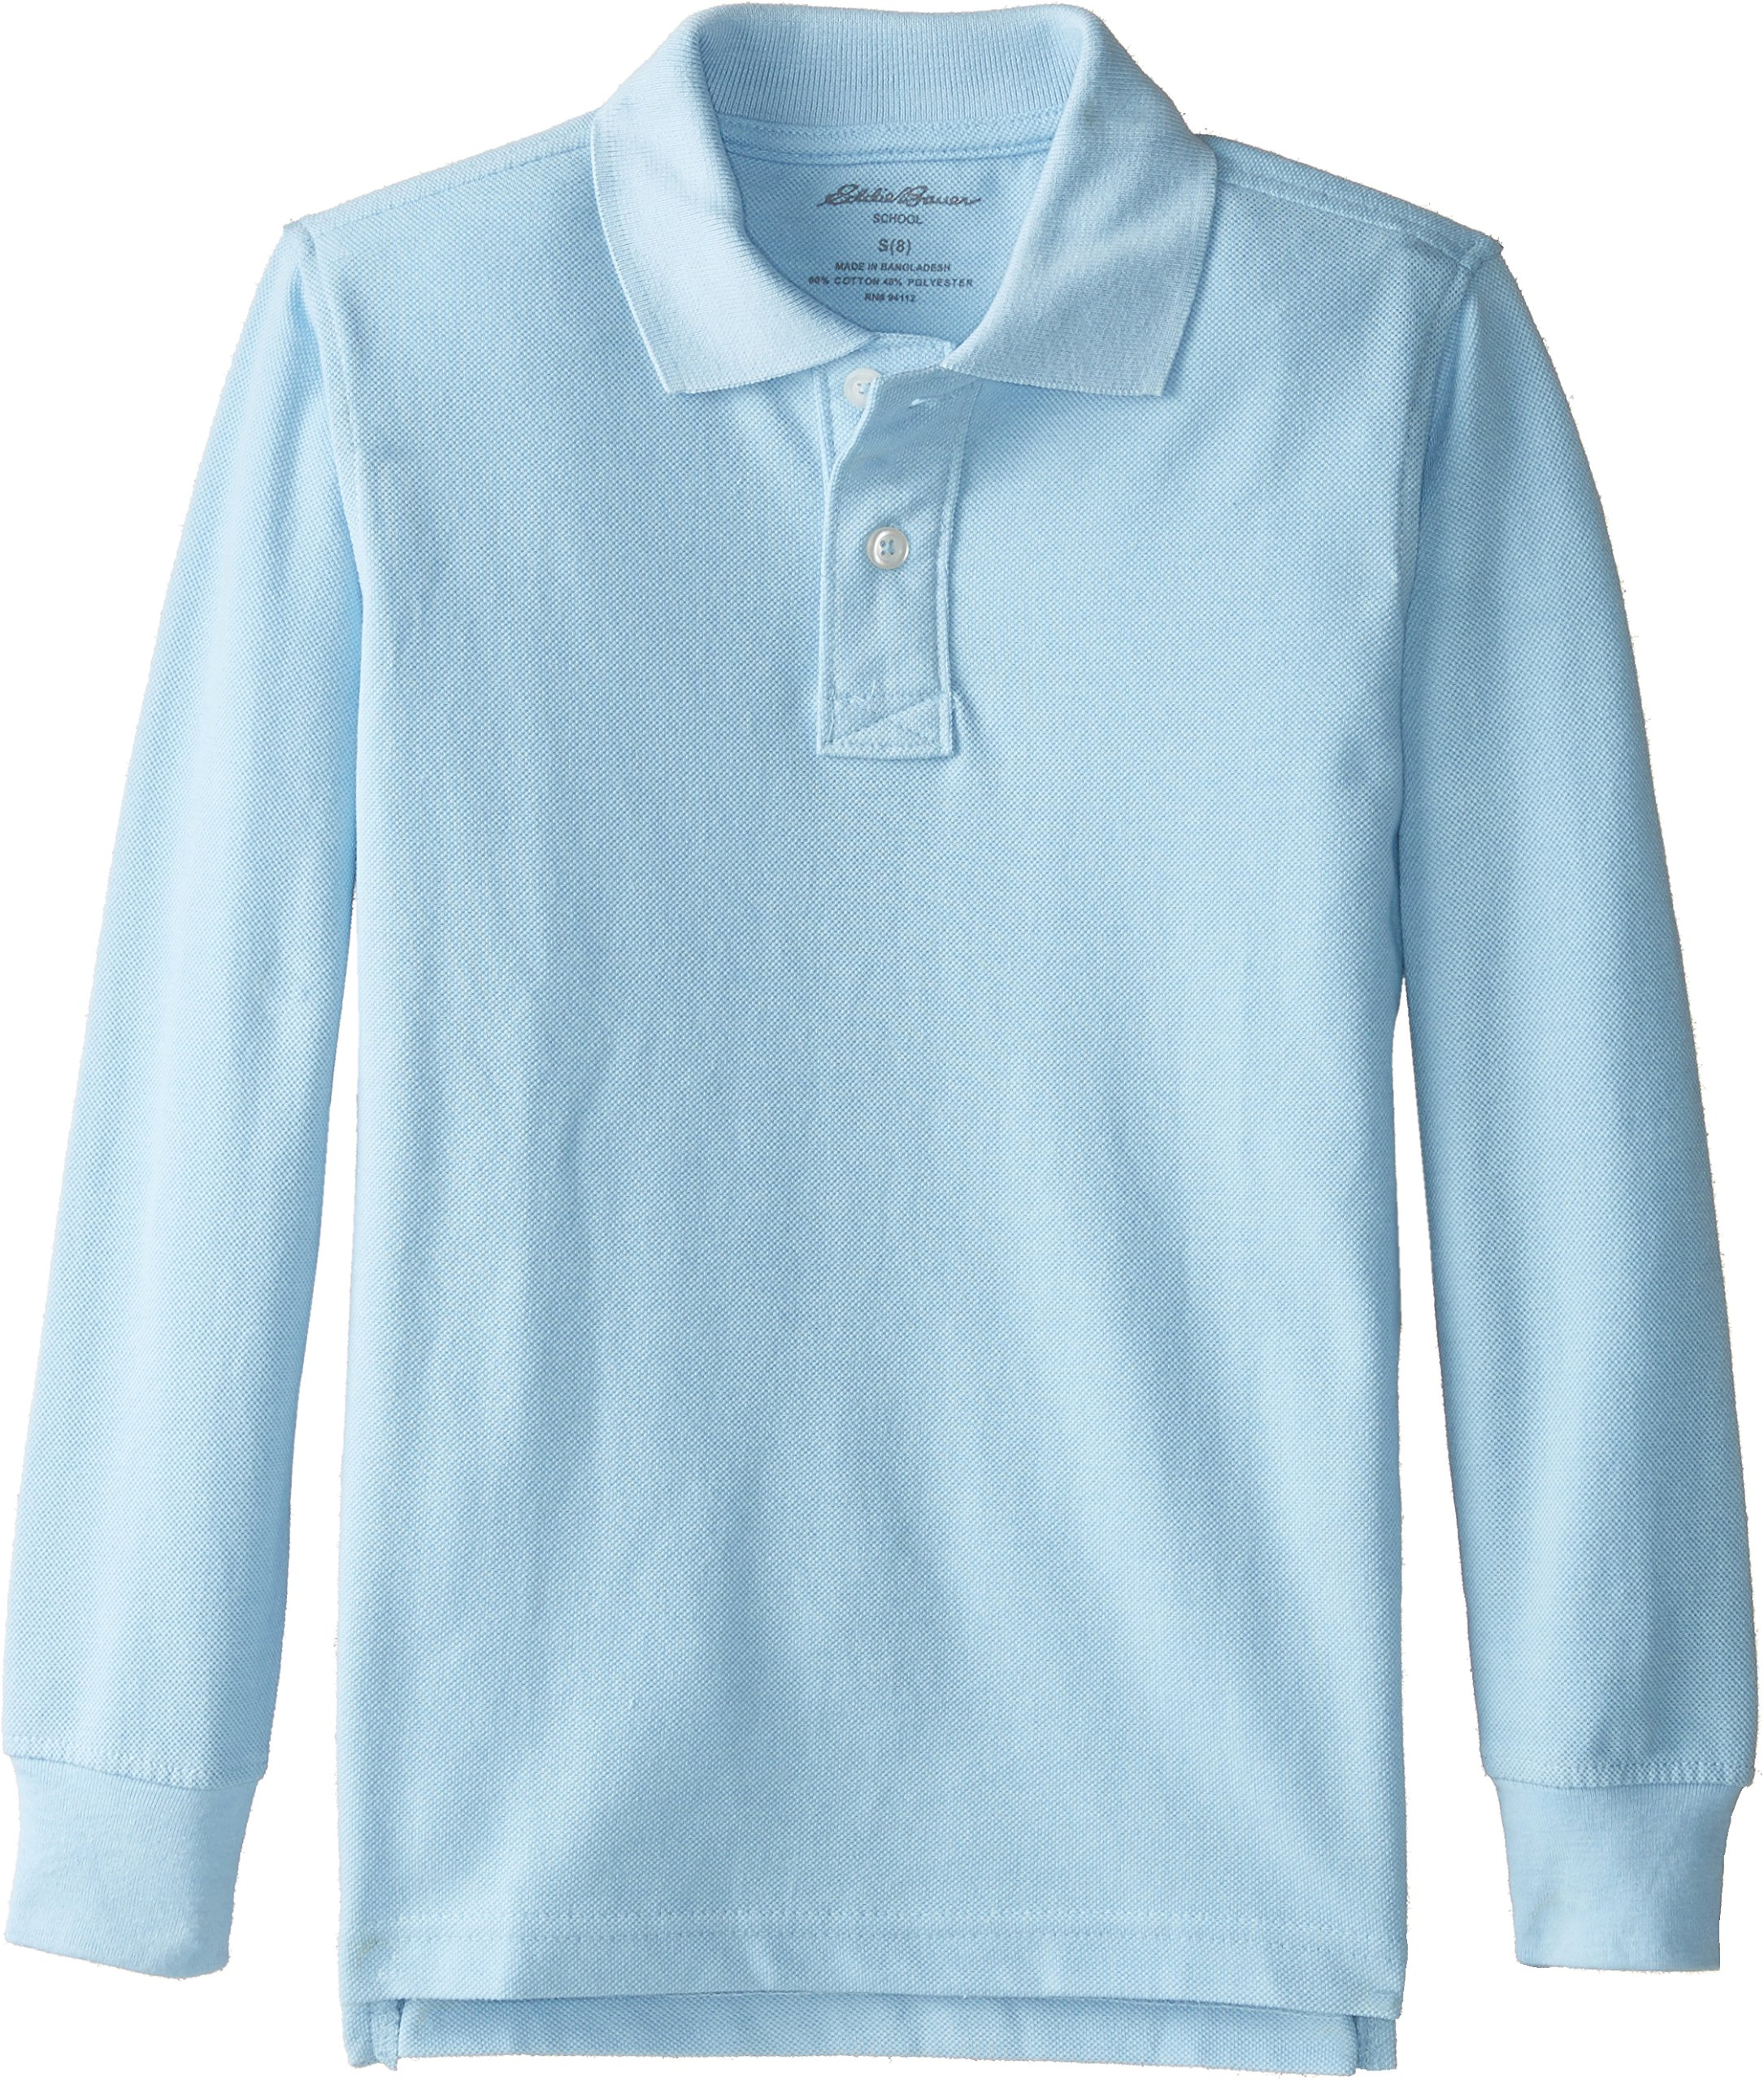 Eddie Bauer Boys' Short Long Sleeve Polo Shirt (More Styles Available), Long Sleeve Light Blue, 8